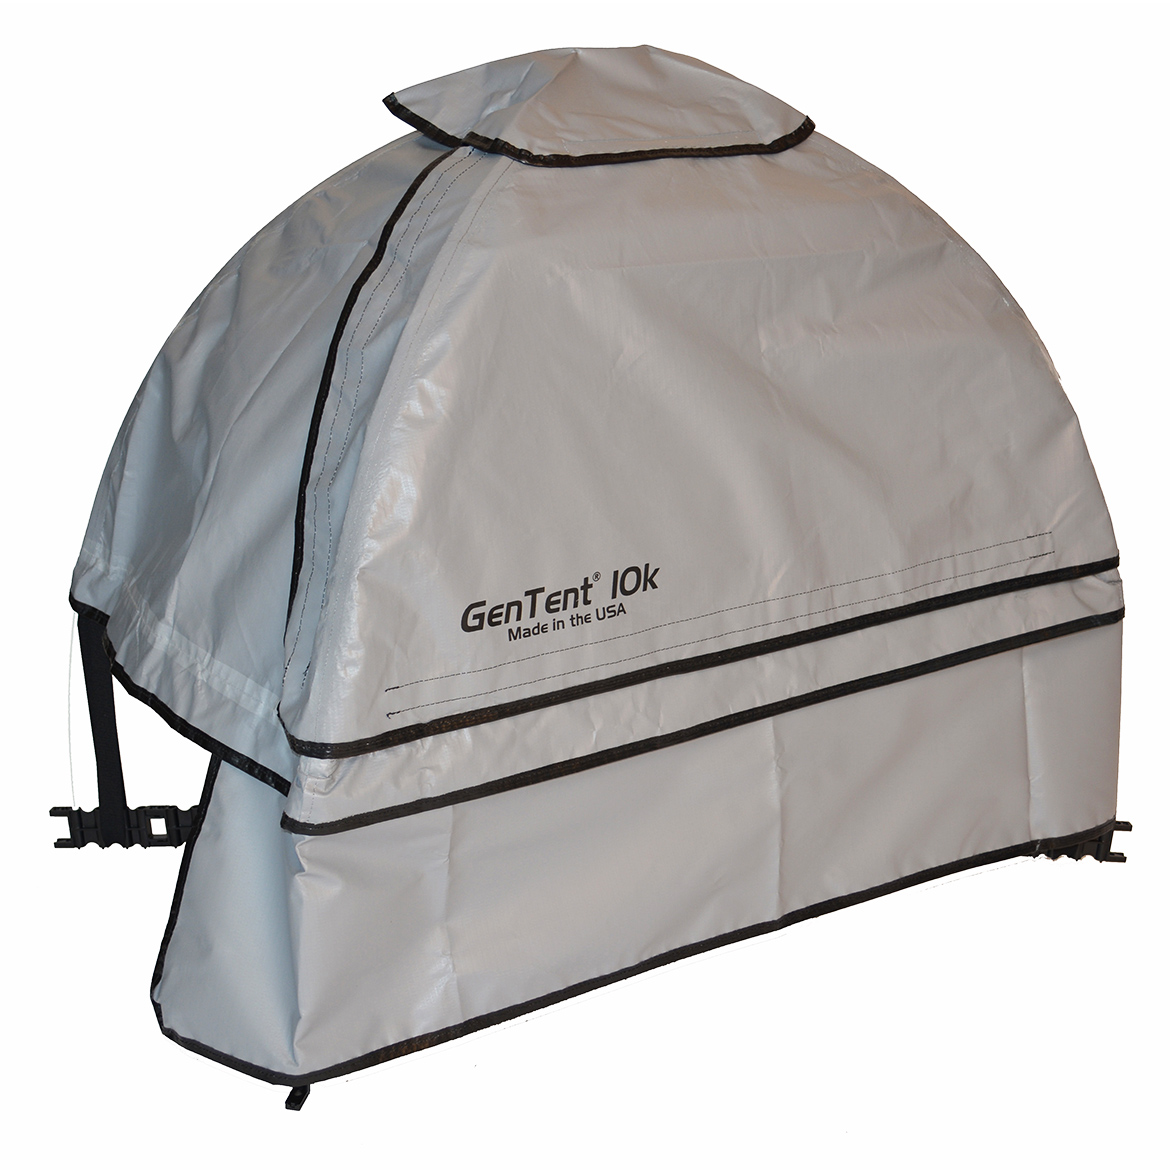 GenTent 10k Stormbracer Edition For 1000W-3000W Inverters Generator Grey Skies Canopy Safety Tent- Made In USA